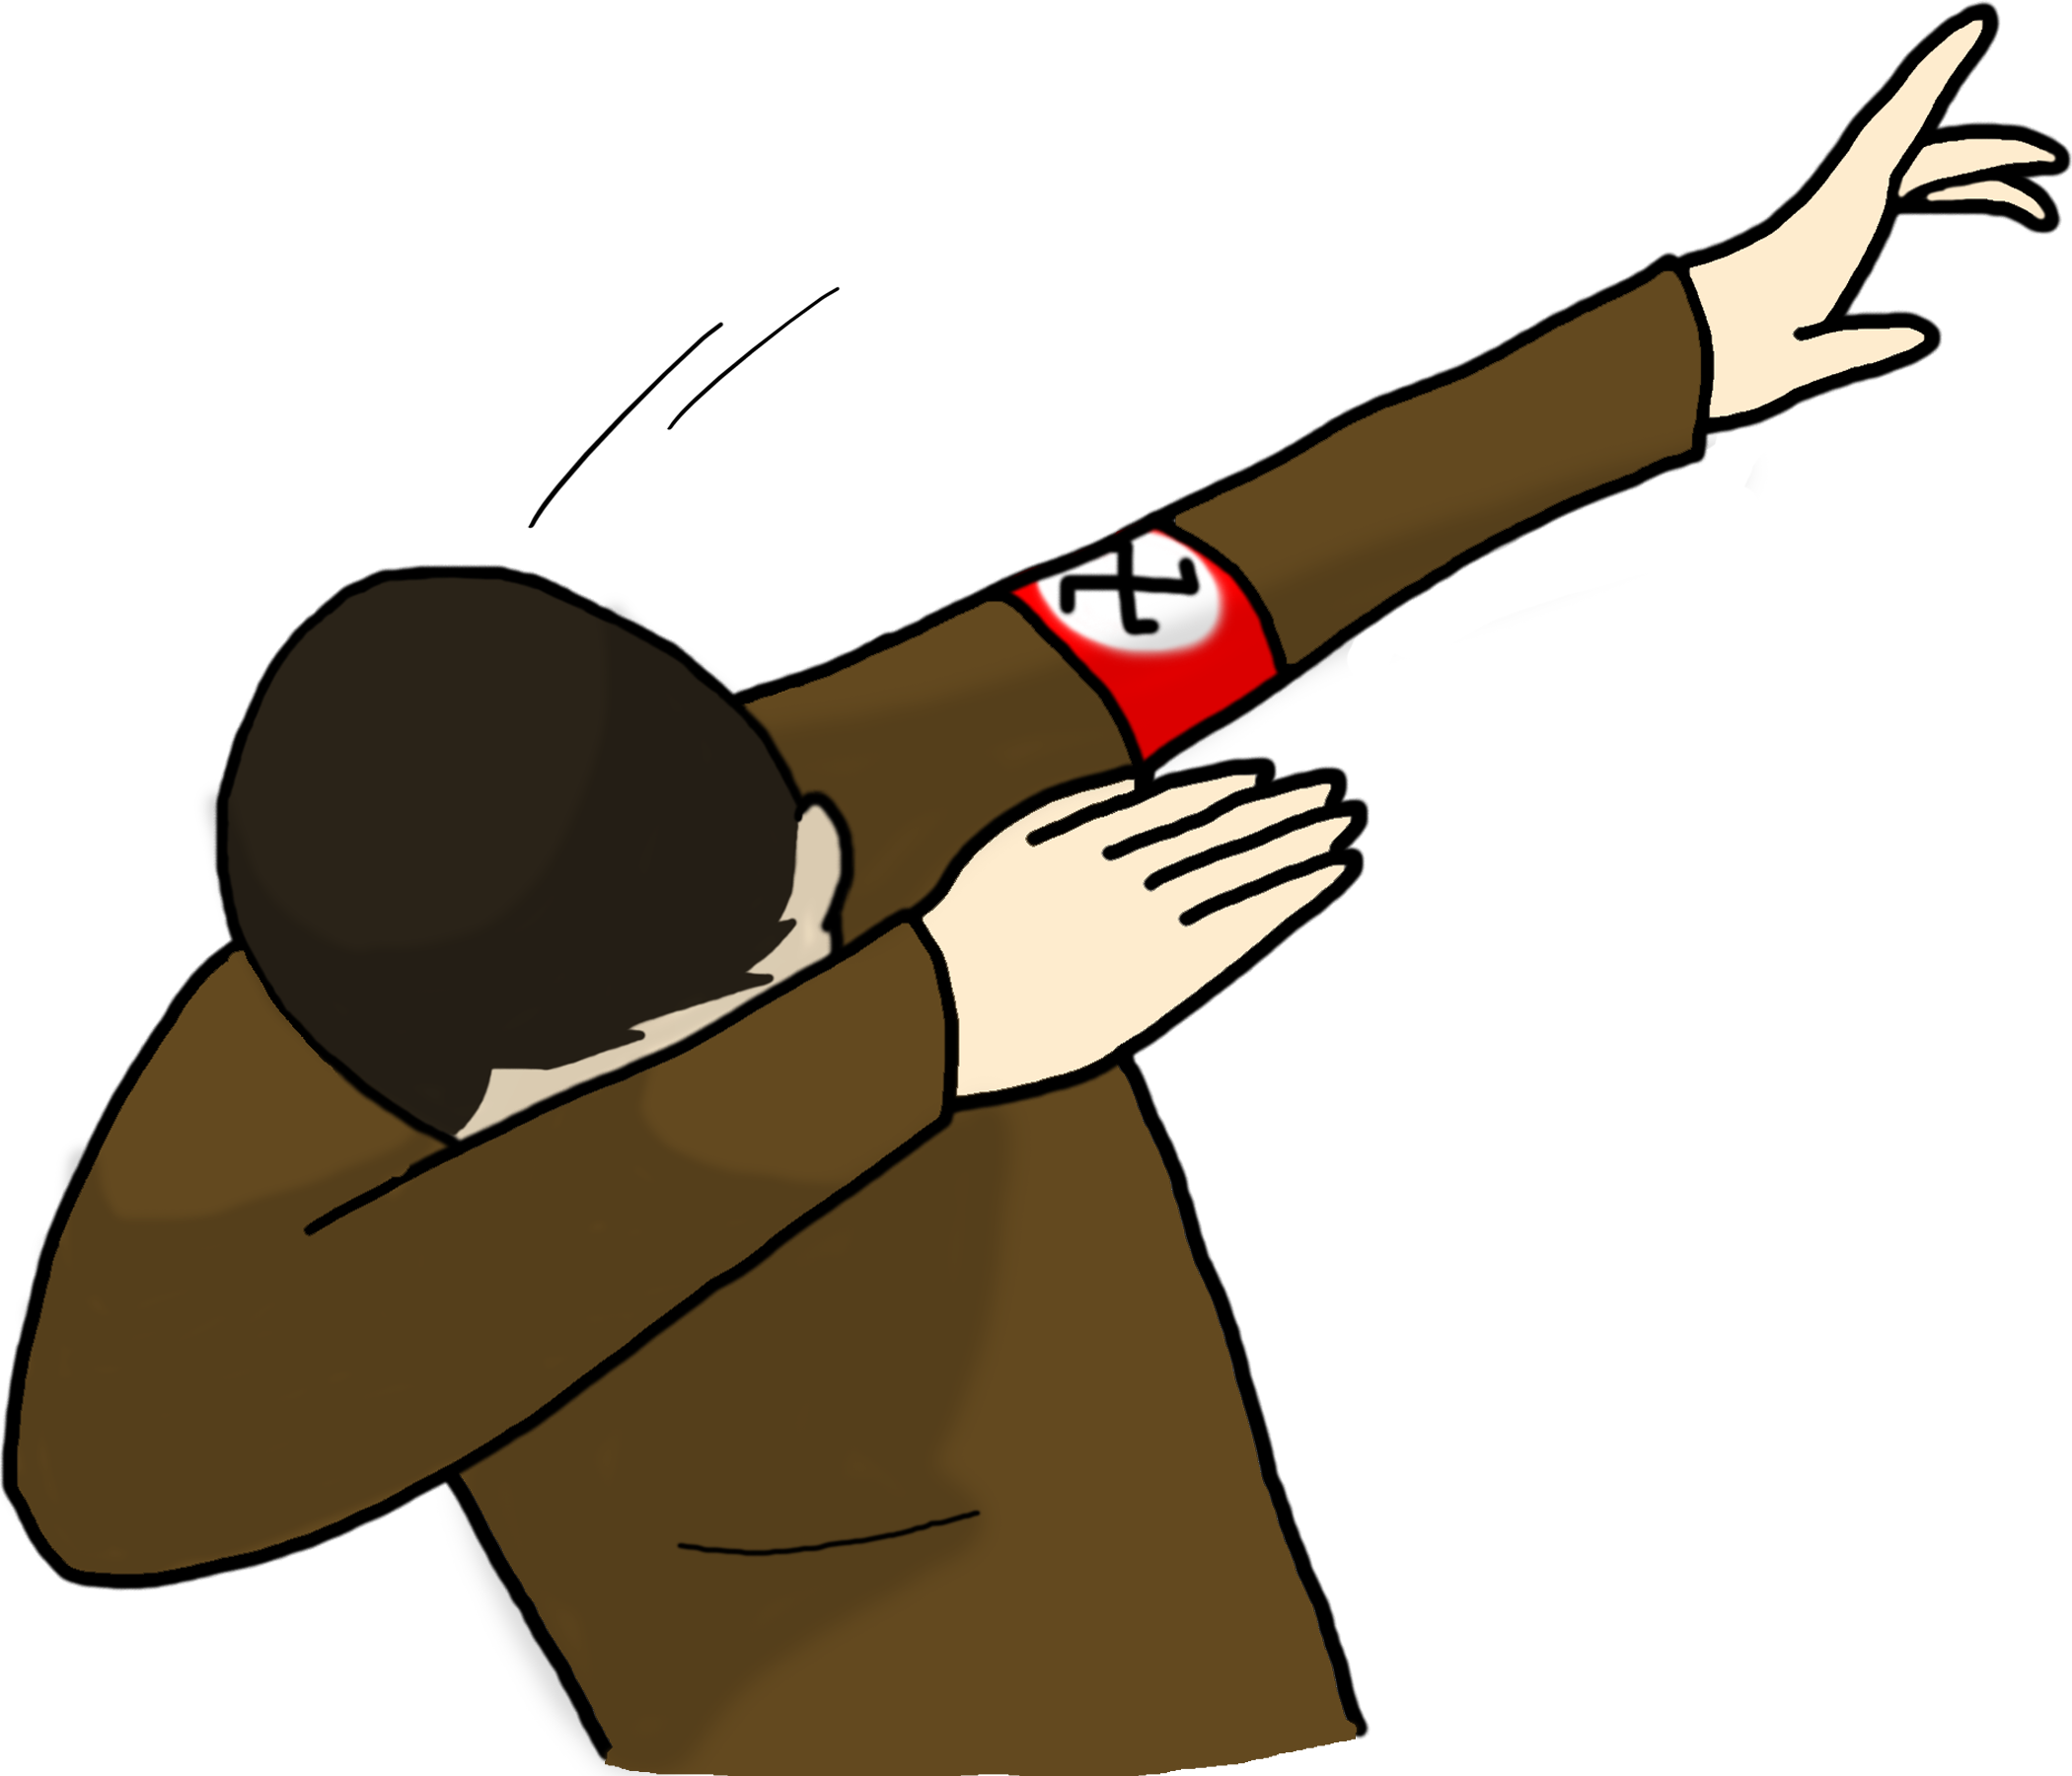 Hitler Hits A Sick Dab By Alphashitlord On Deviantart